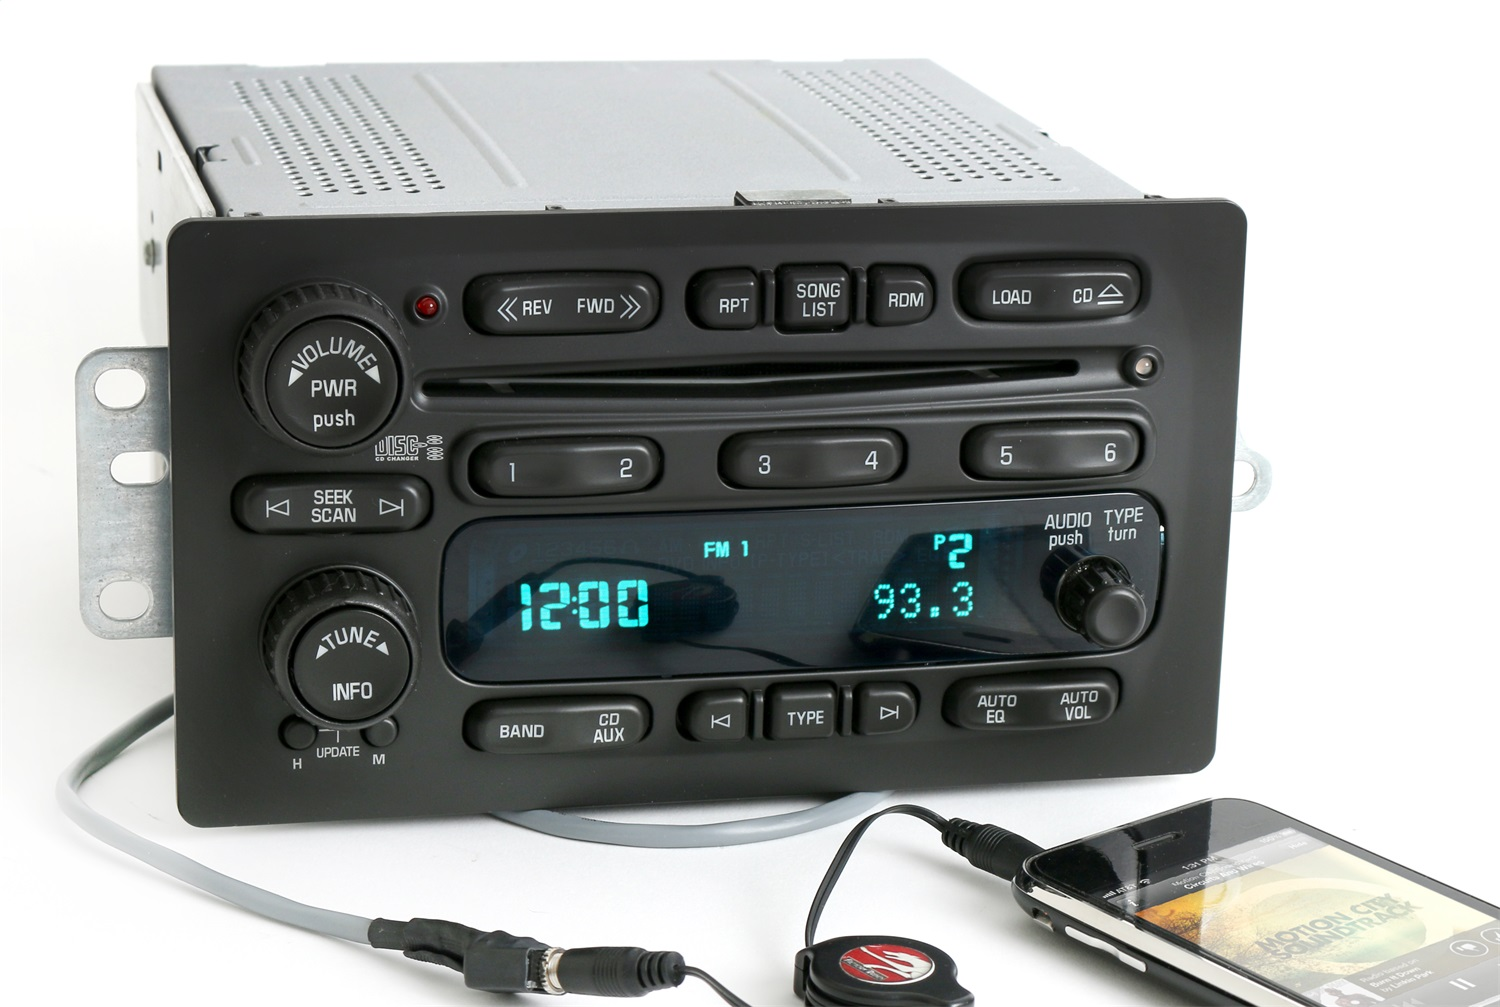 1 Factory Radio 638-01956-B AM/FM Radio 6 Disc CD Player